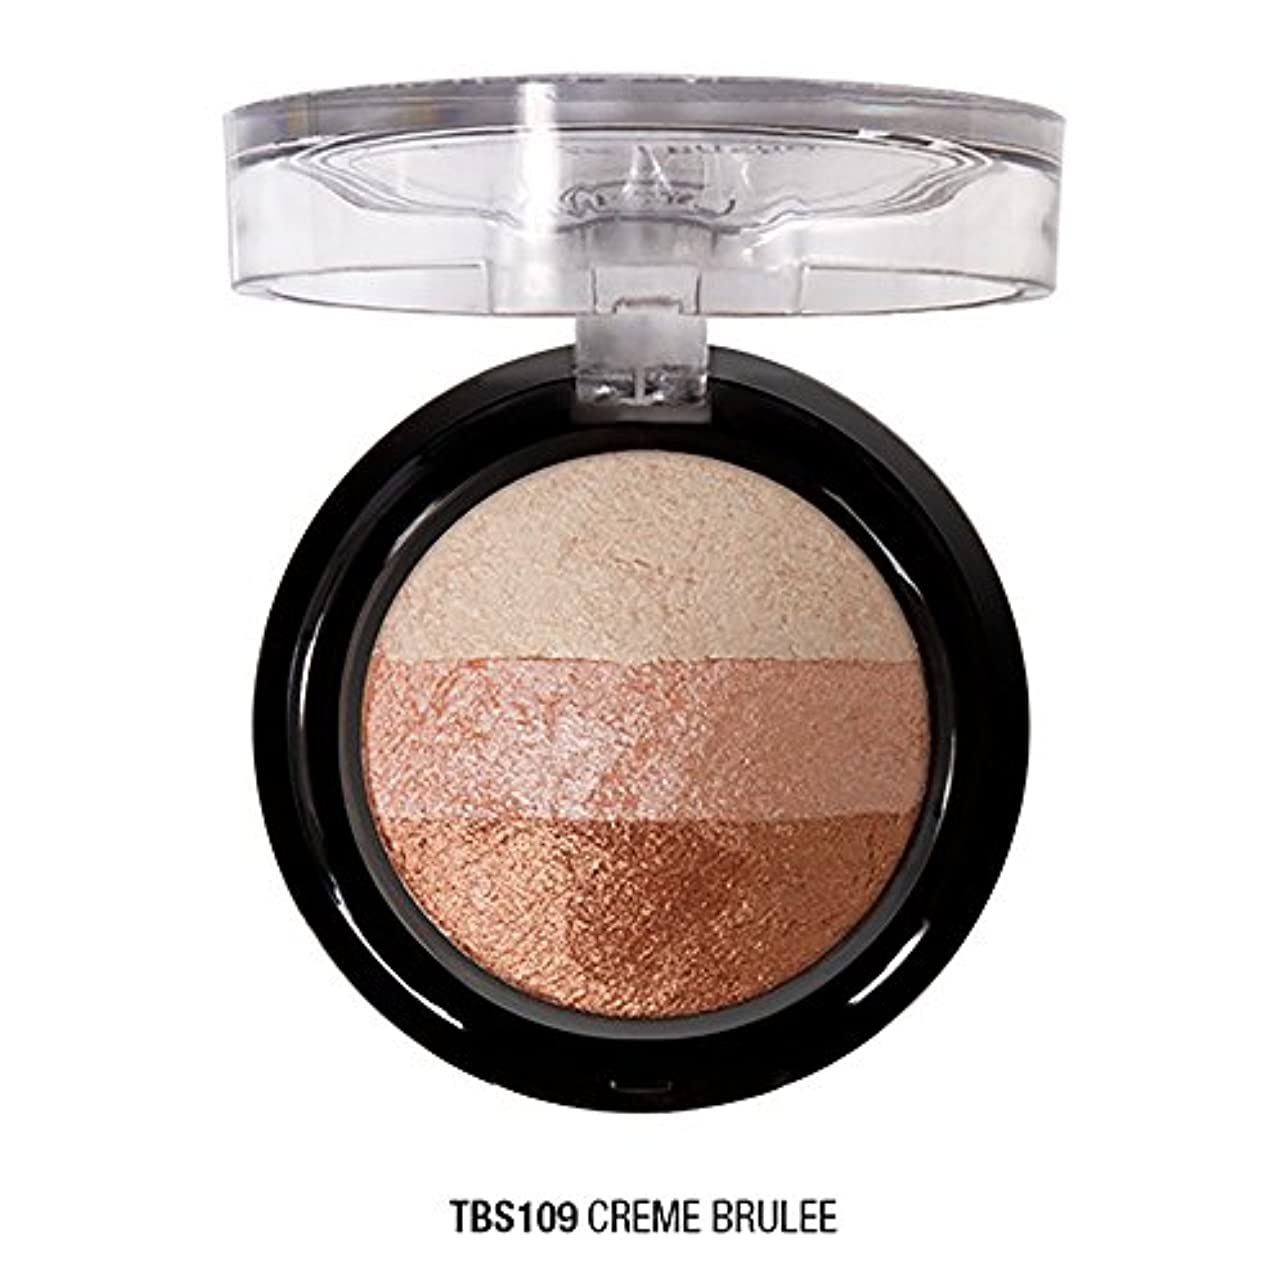 パール賞賛する狭いJ. CAT BEAUTY Triple Crown Baked Shadow - Creme Brulee (並行輸入品)